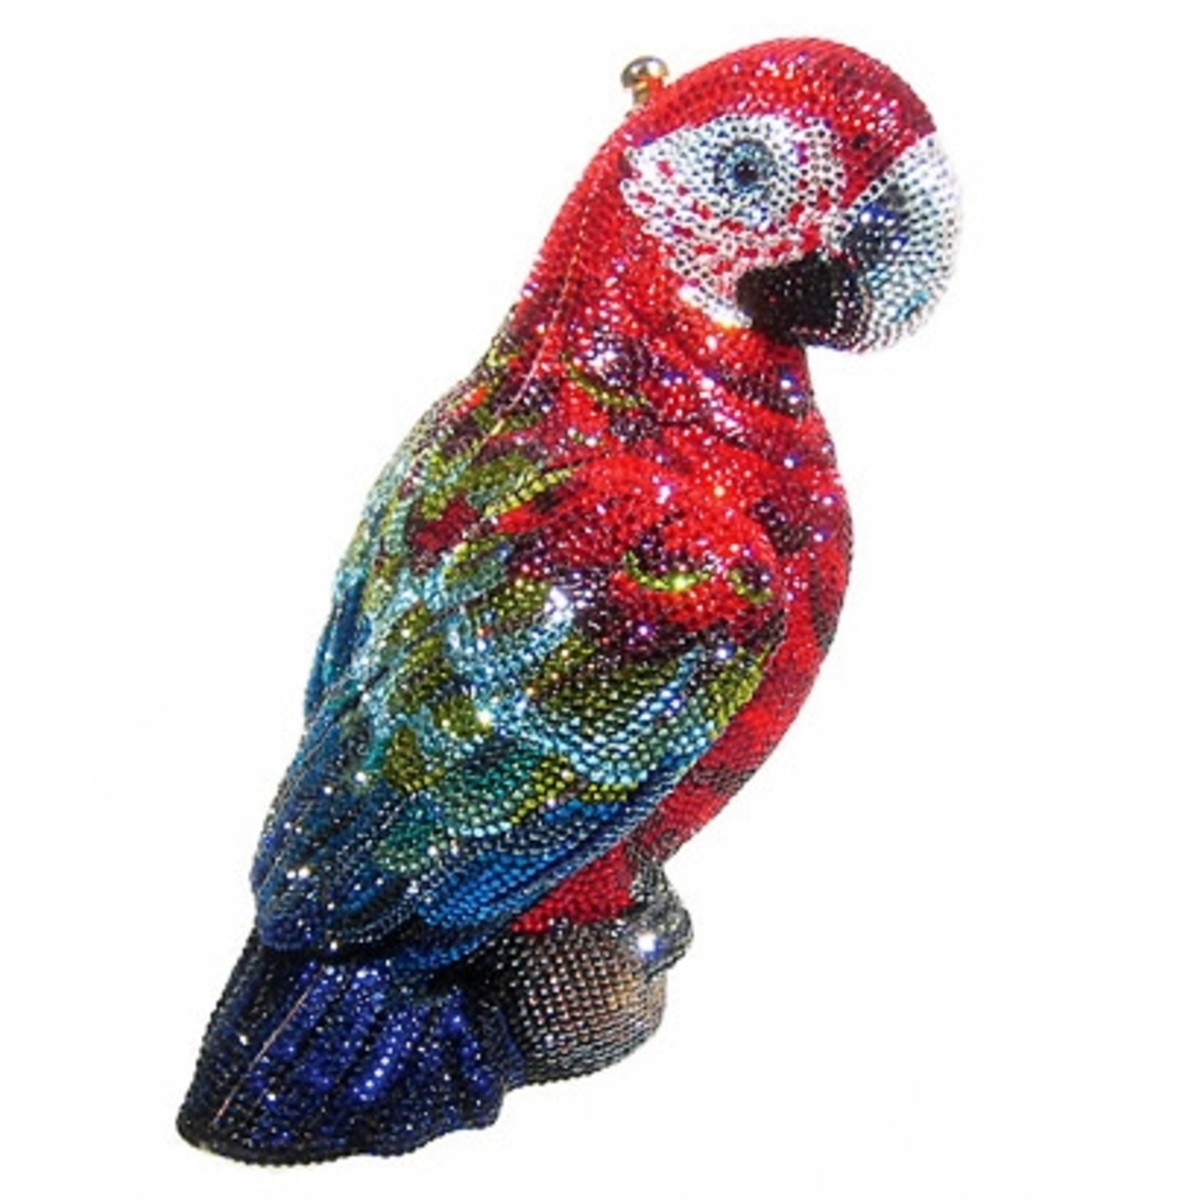 SCARLETPrice: $5,695 This one is really unique as it is in the parrot shape. It has wonderfully sculpted tail and wing feathers. It also includes onyx eyes. On the top, it is a push down closure. It has been beaded by hand out of multicolored Aust